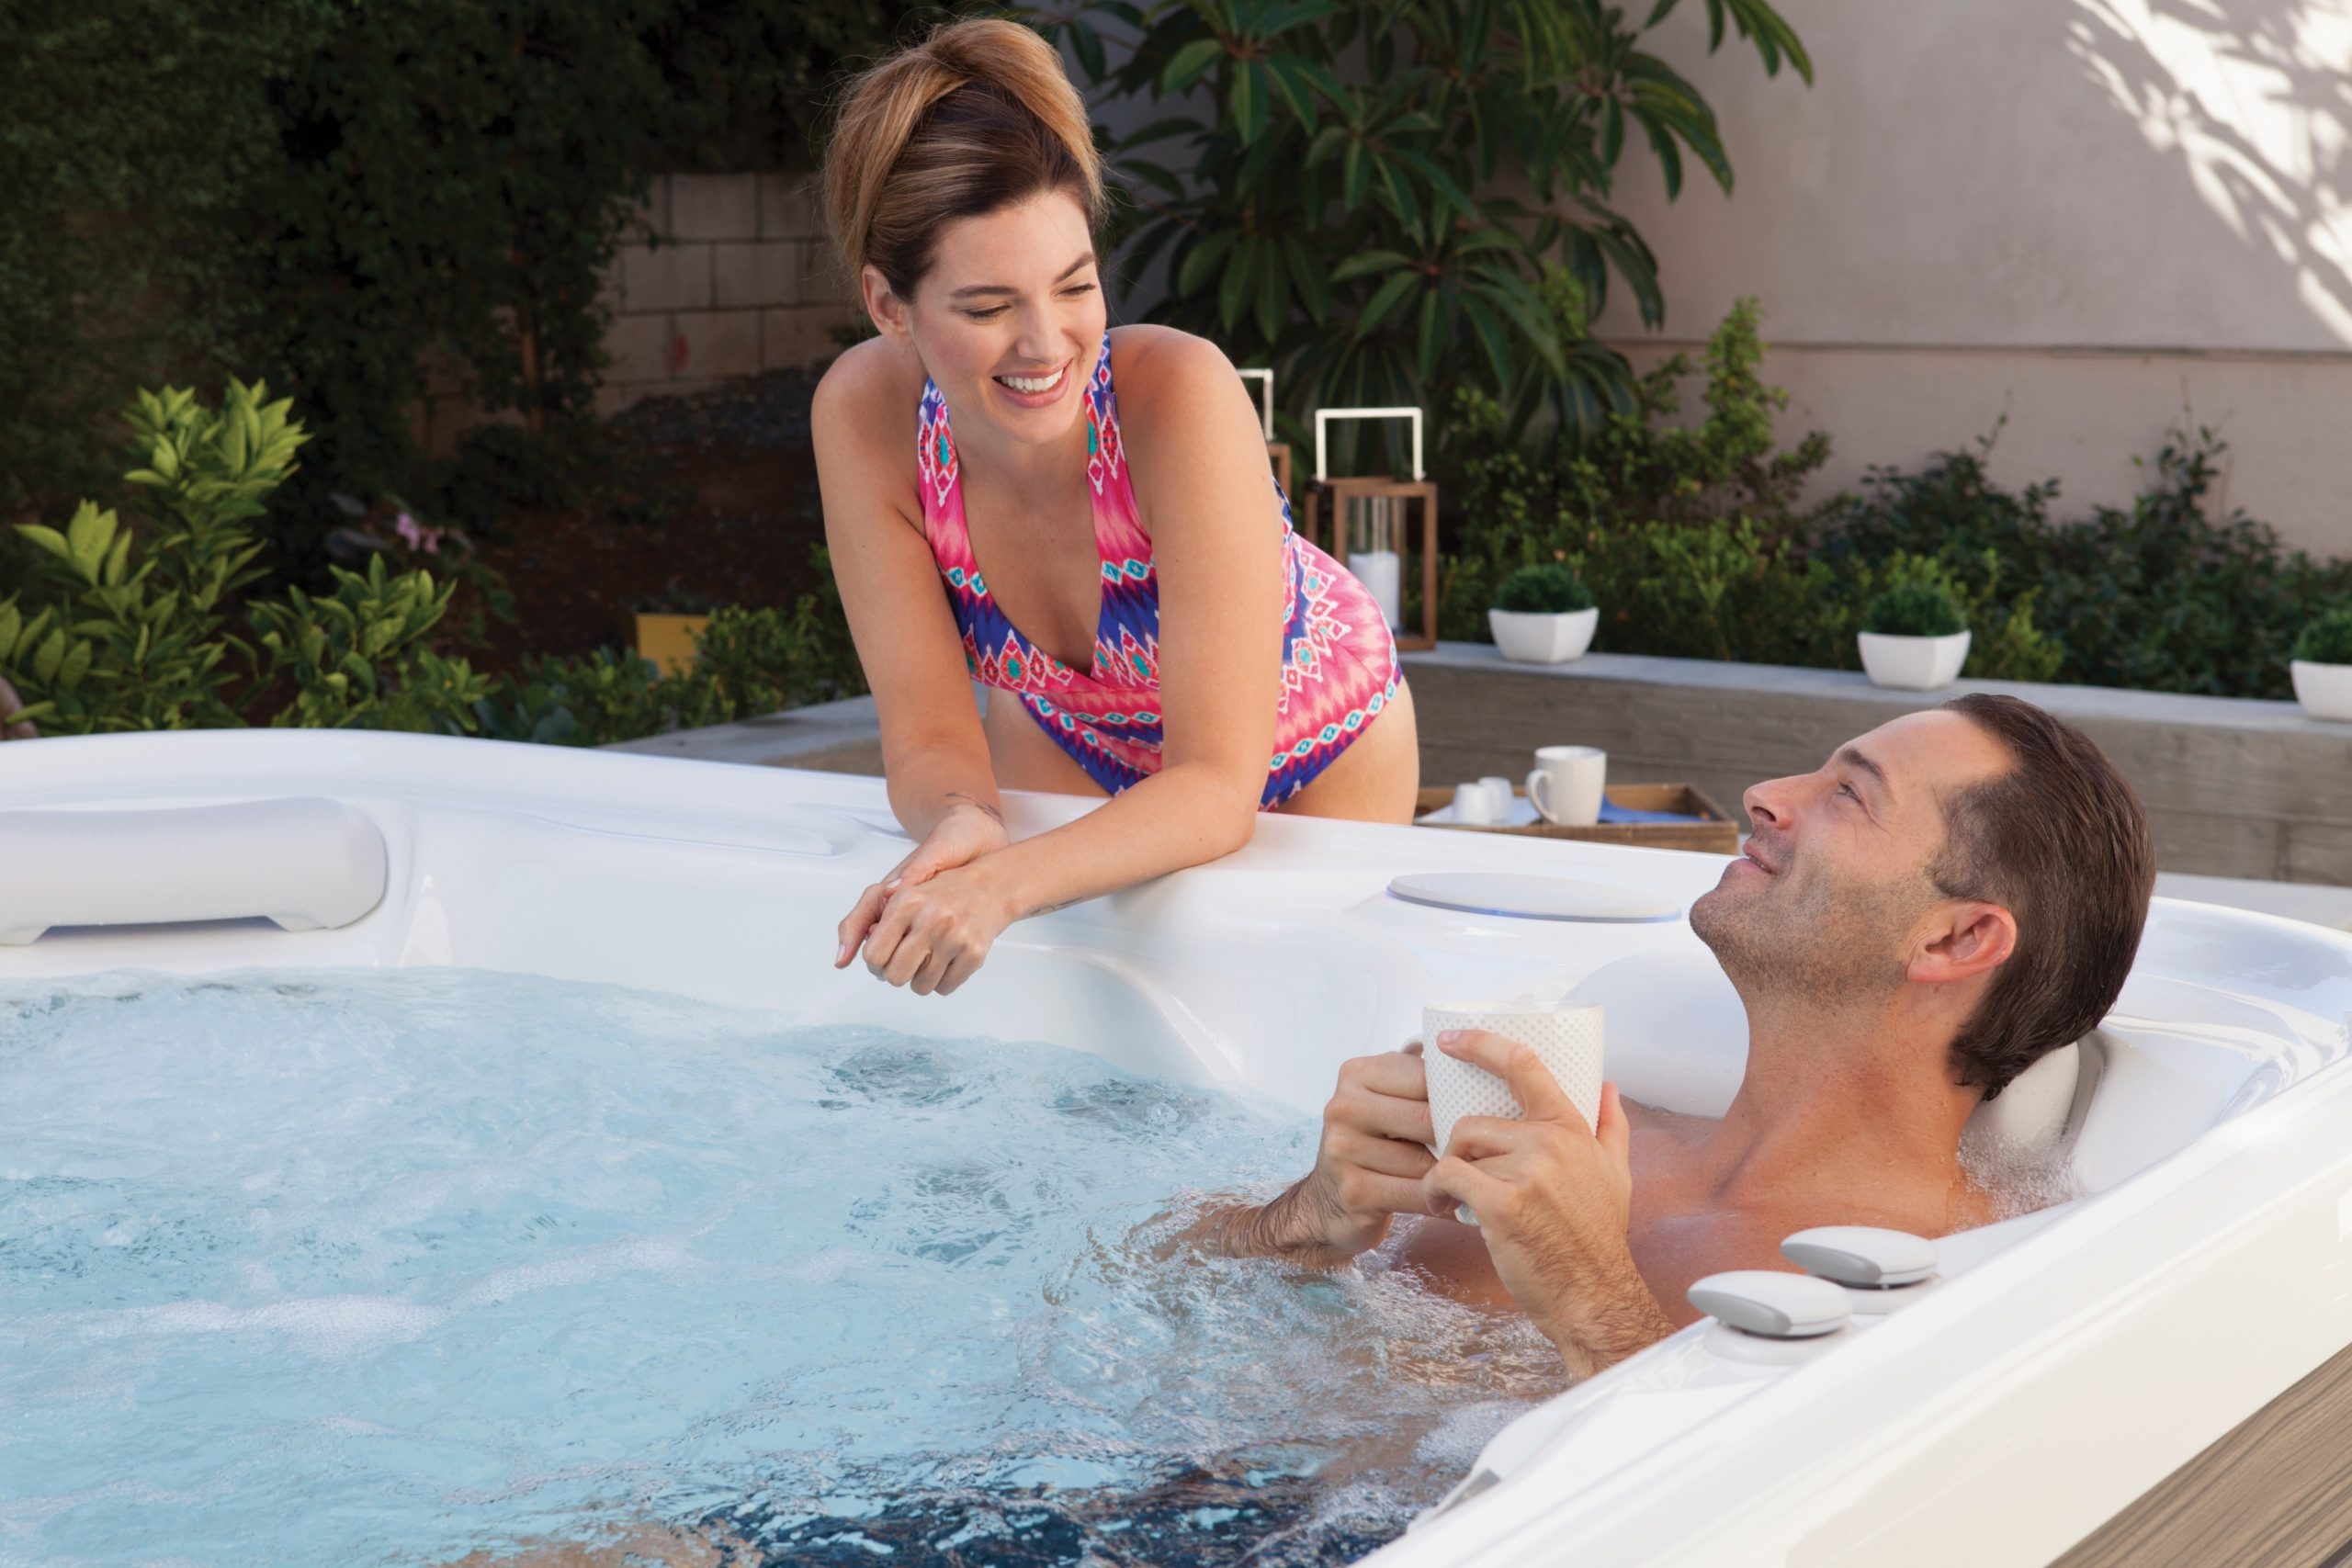 Five Helpful Tips for New Hot Tub Users